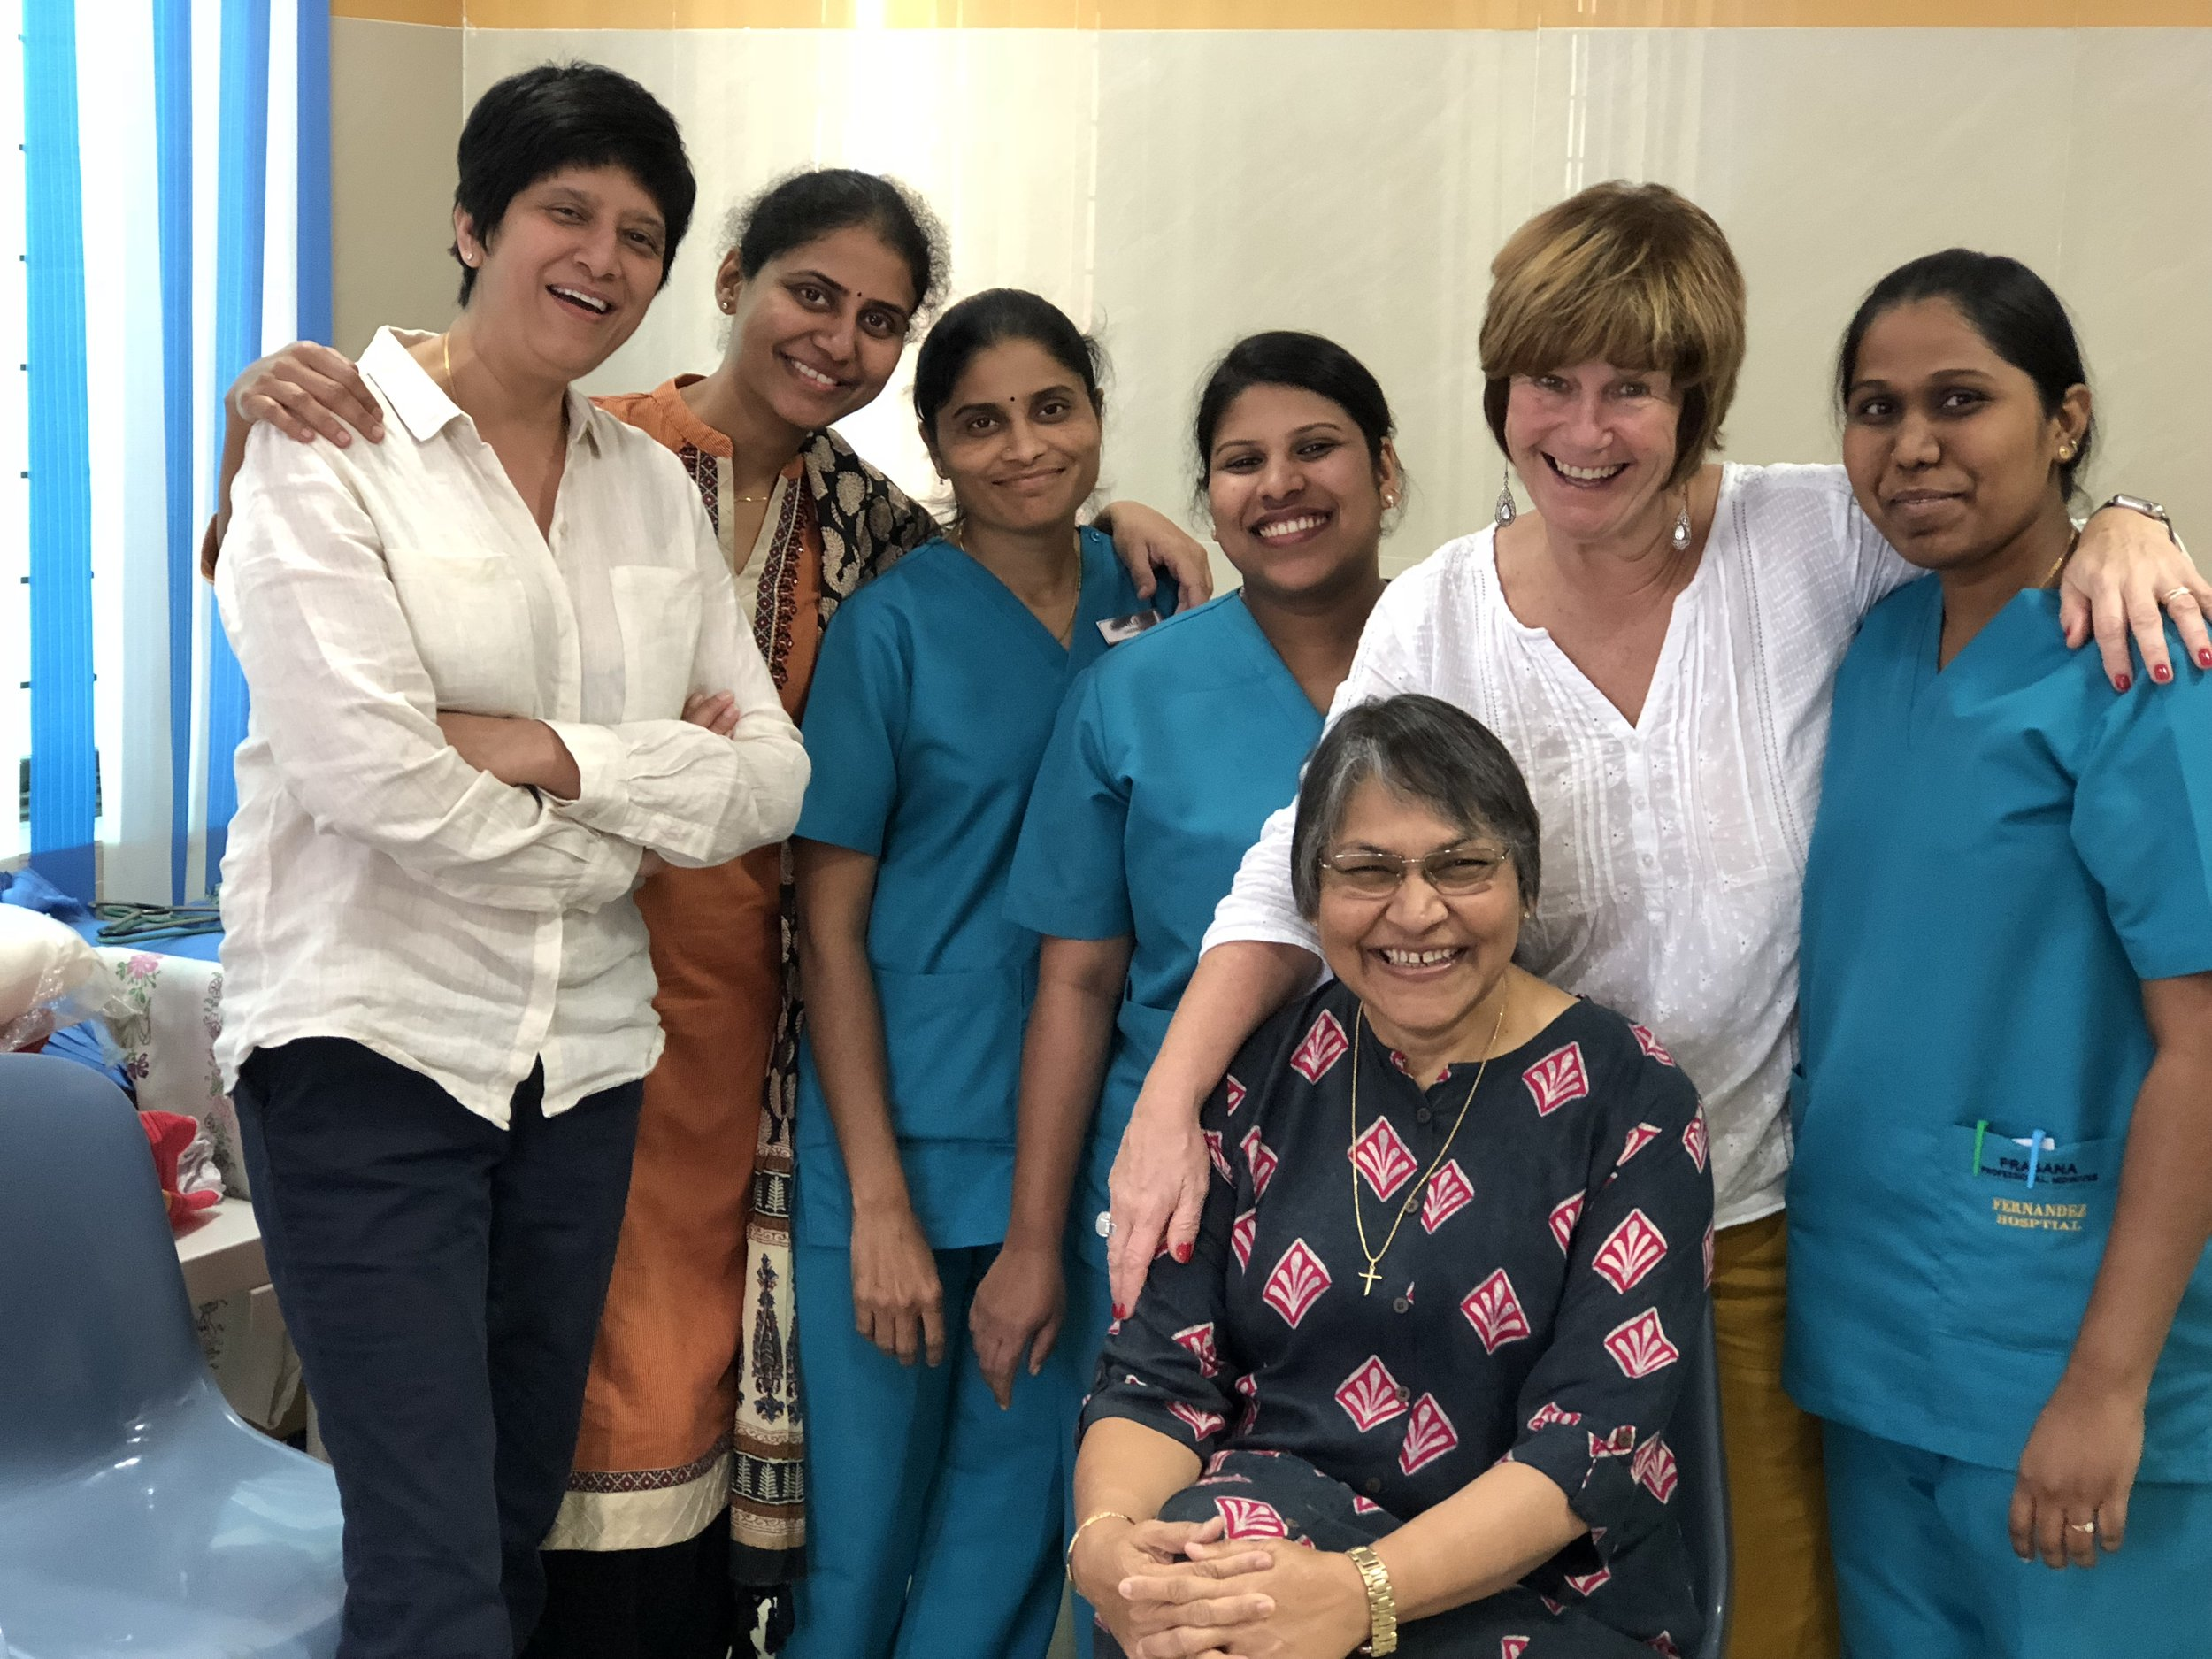 Just enjoying being together at lunch time - left to right - Indie Kaur, Dr Rajitha, midwives Manjula, Siji,me, midwife Prasanna and Dr Evita Fernandez